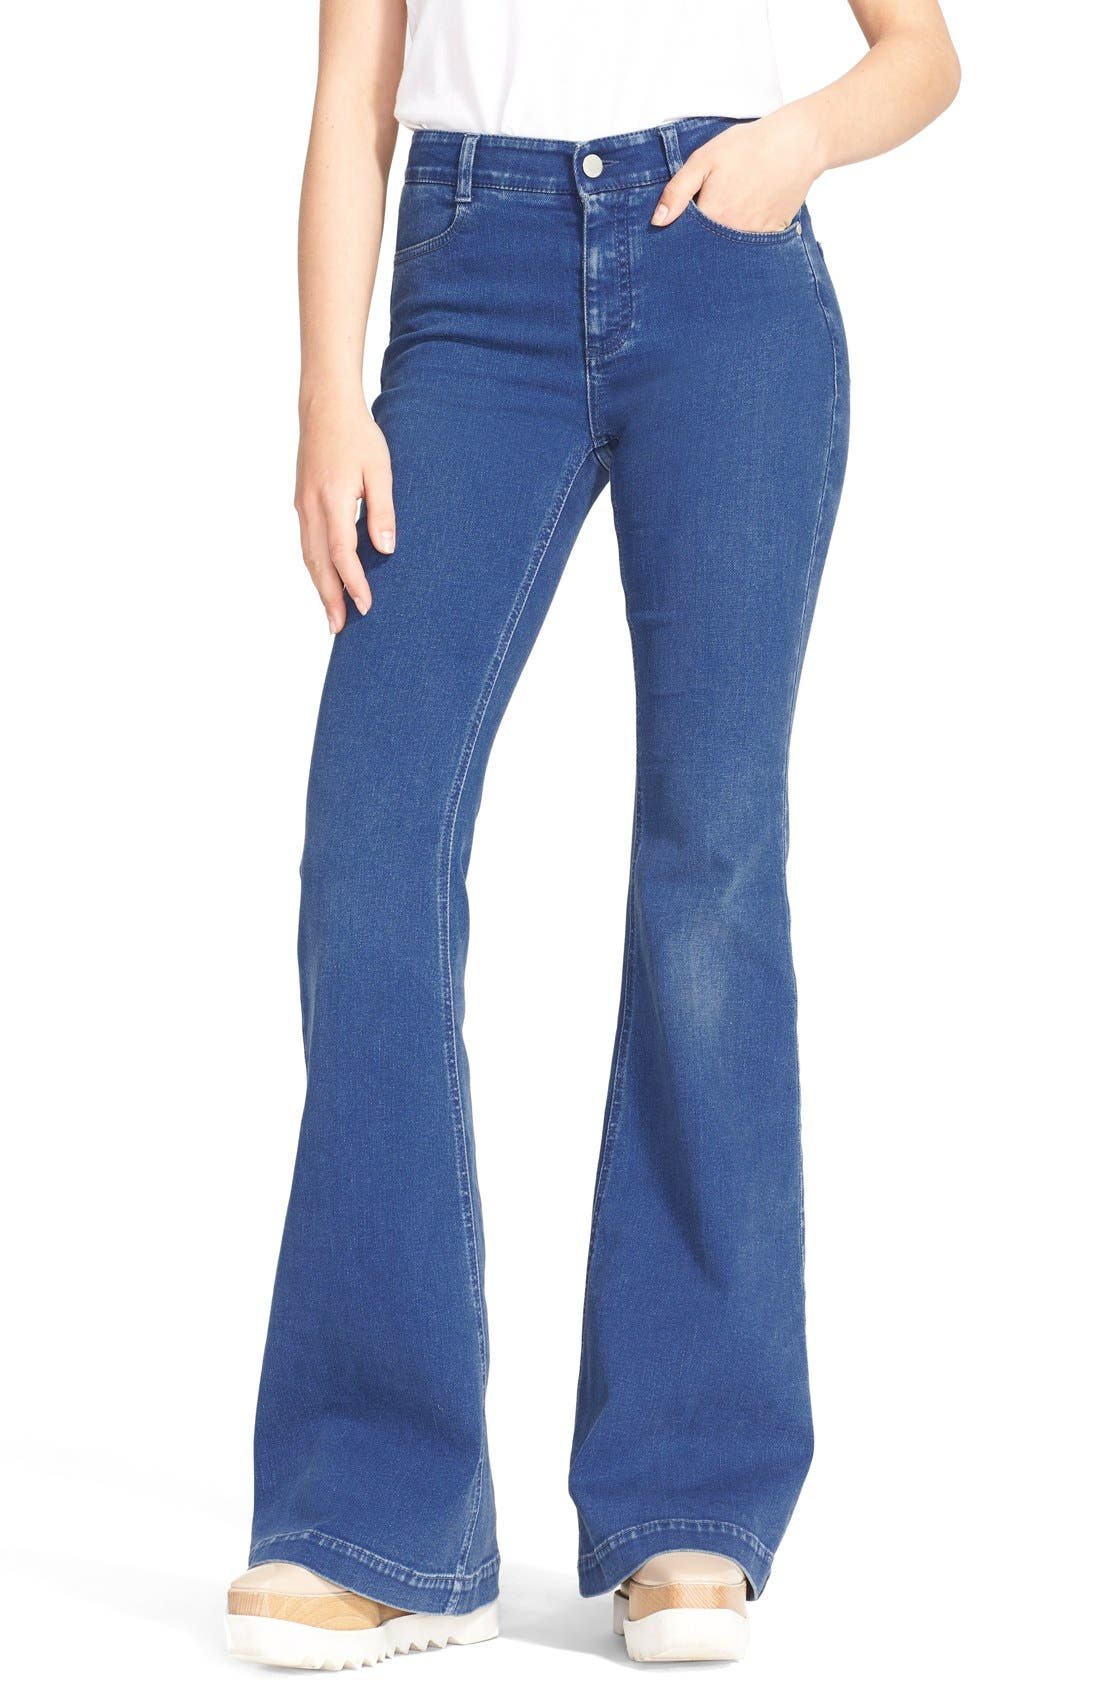 Main Image - Stella McCartney 'The '70s' Flare Jeans